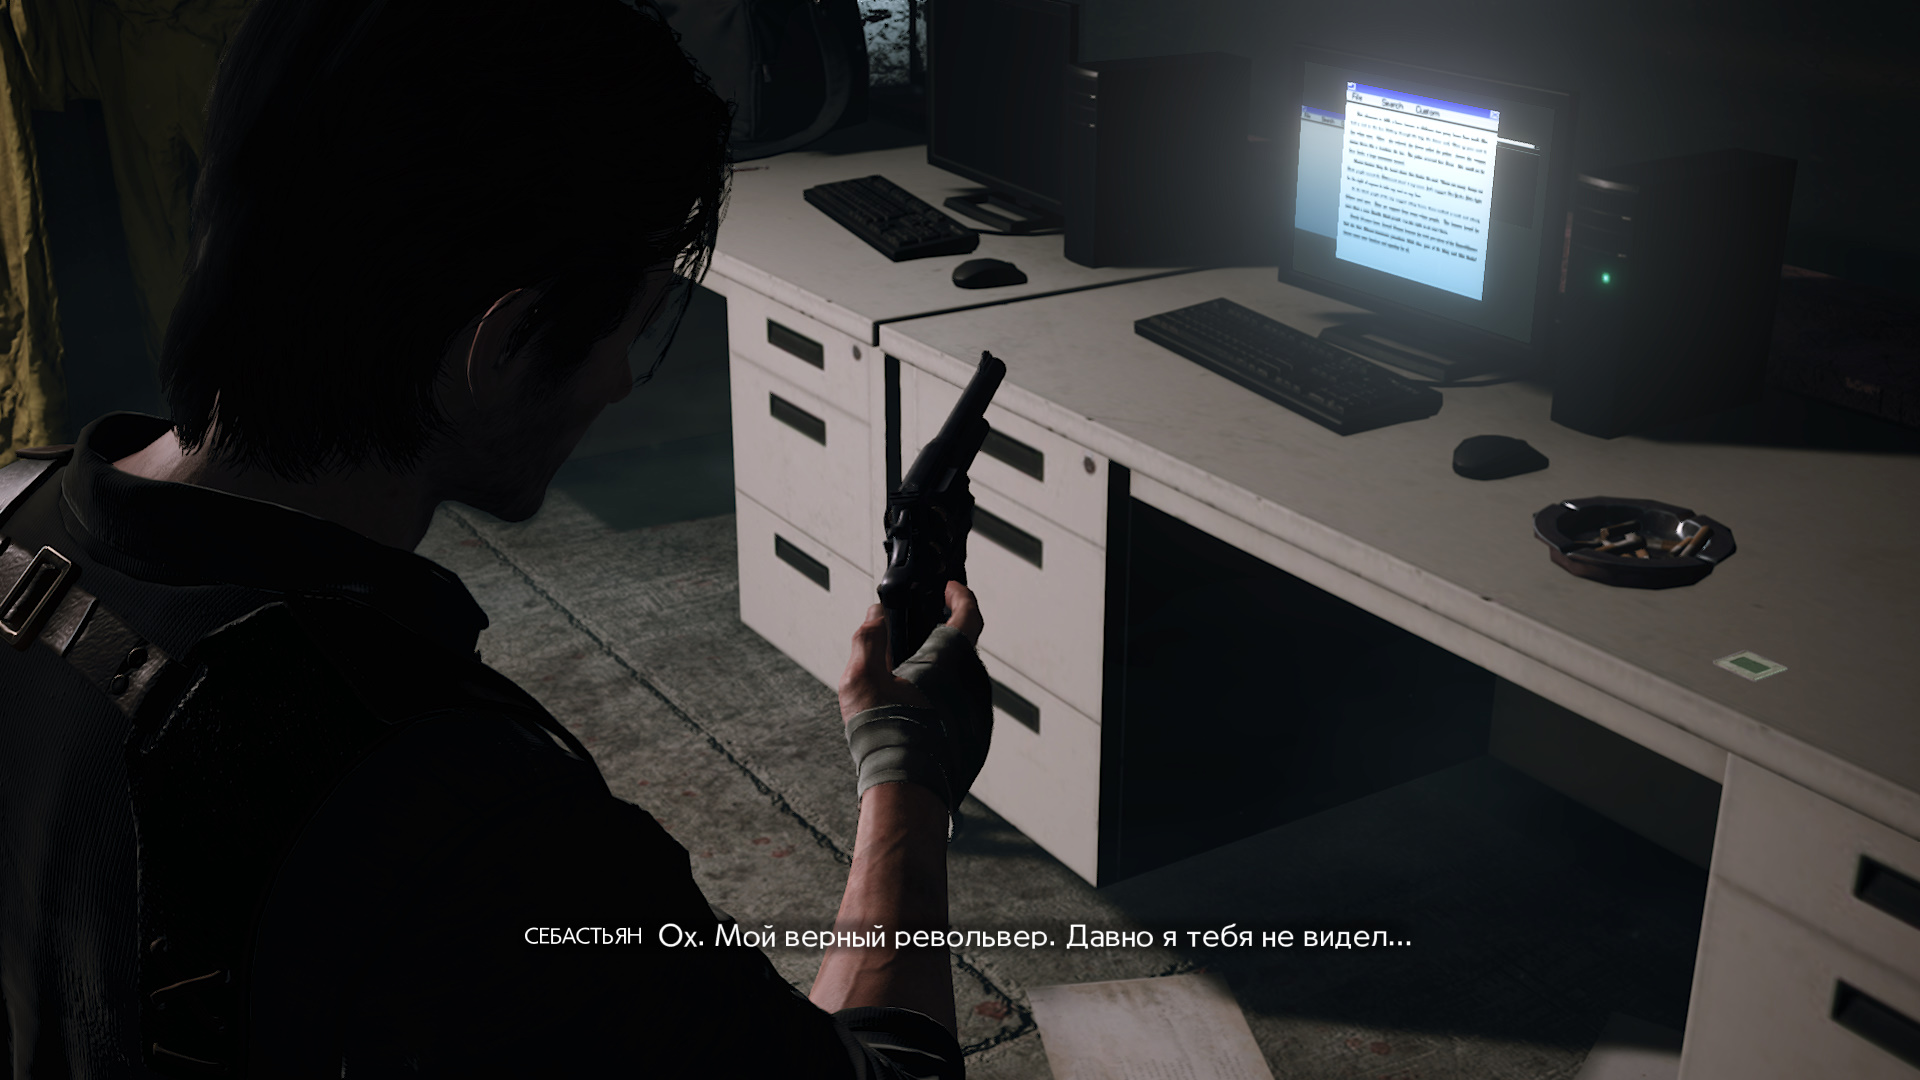 TEW2 2019-02-07 22-11-53-907.jpg - Evil Within 2, the